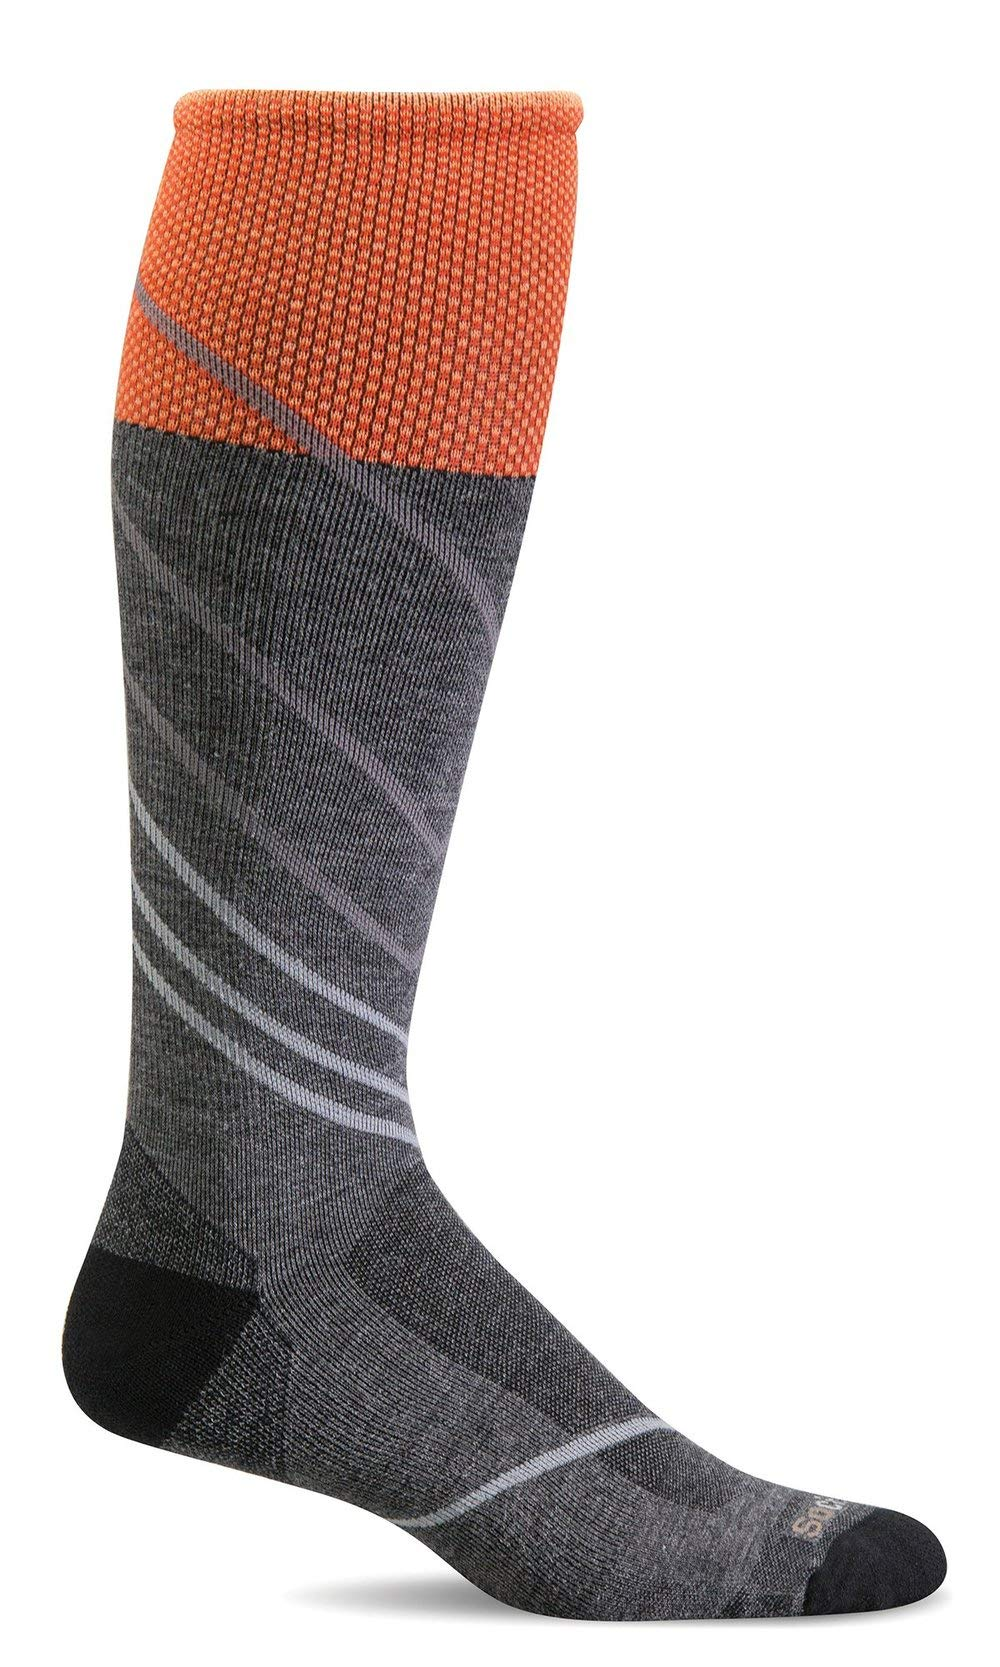 Sockwell Men's Pulse Firm Graduated Compression Sock, Charcoal - Medium/Large by Sockwell